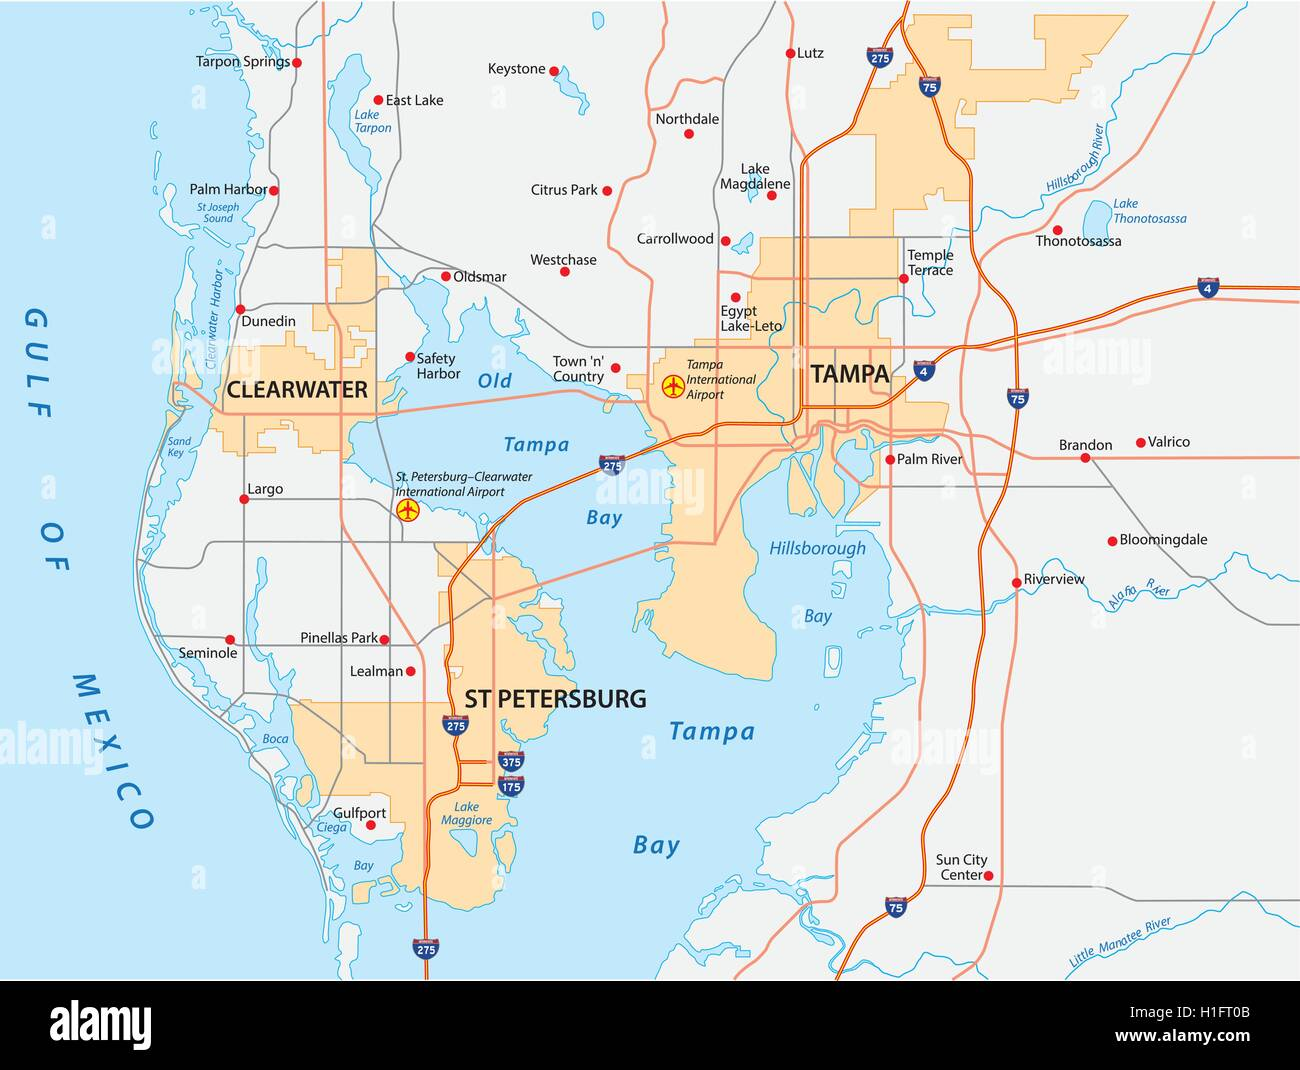 tampa bay area map Stock Vector Art Illustration Vector Image